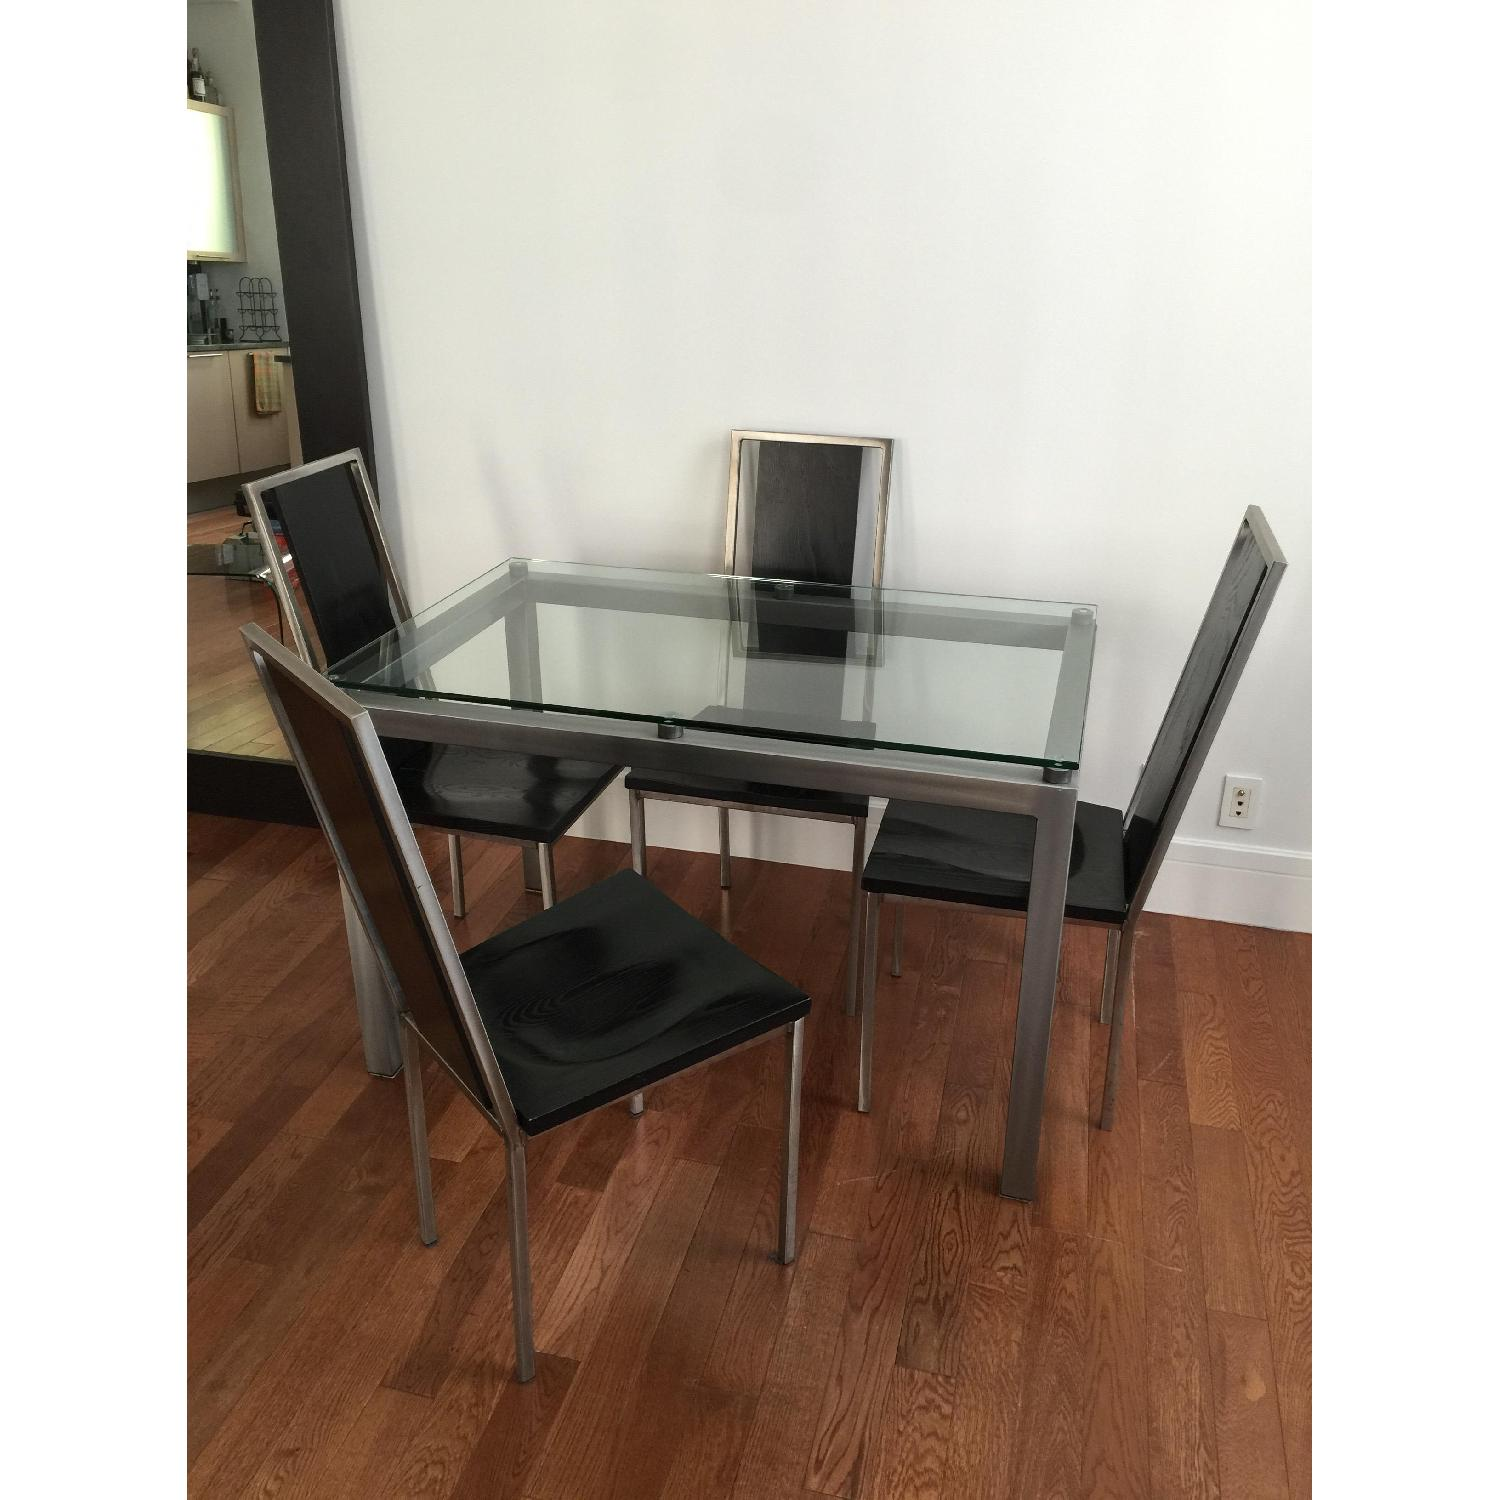 Glass Top/Stainless Base Parsons Table w/ 4 Black Ash Wood Chairs - image-1